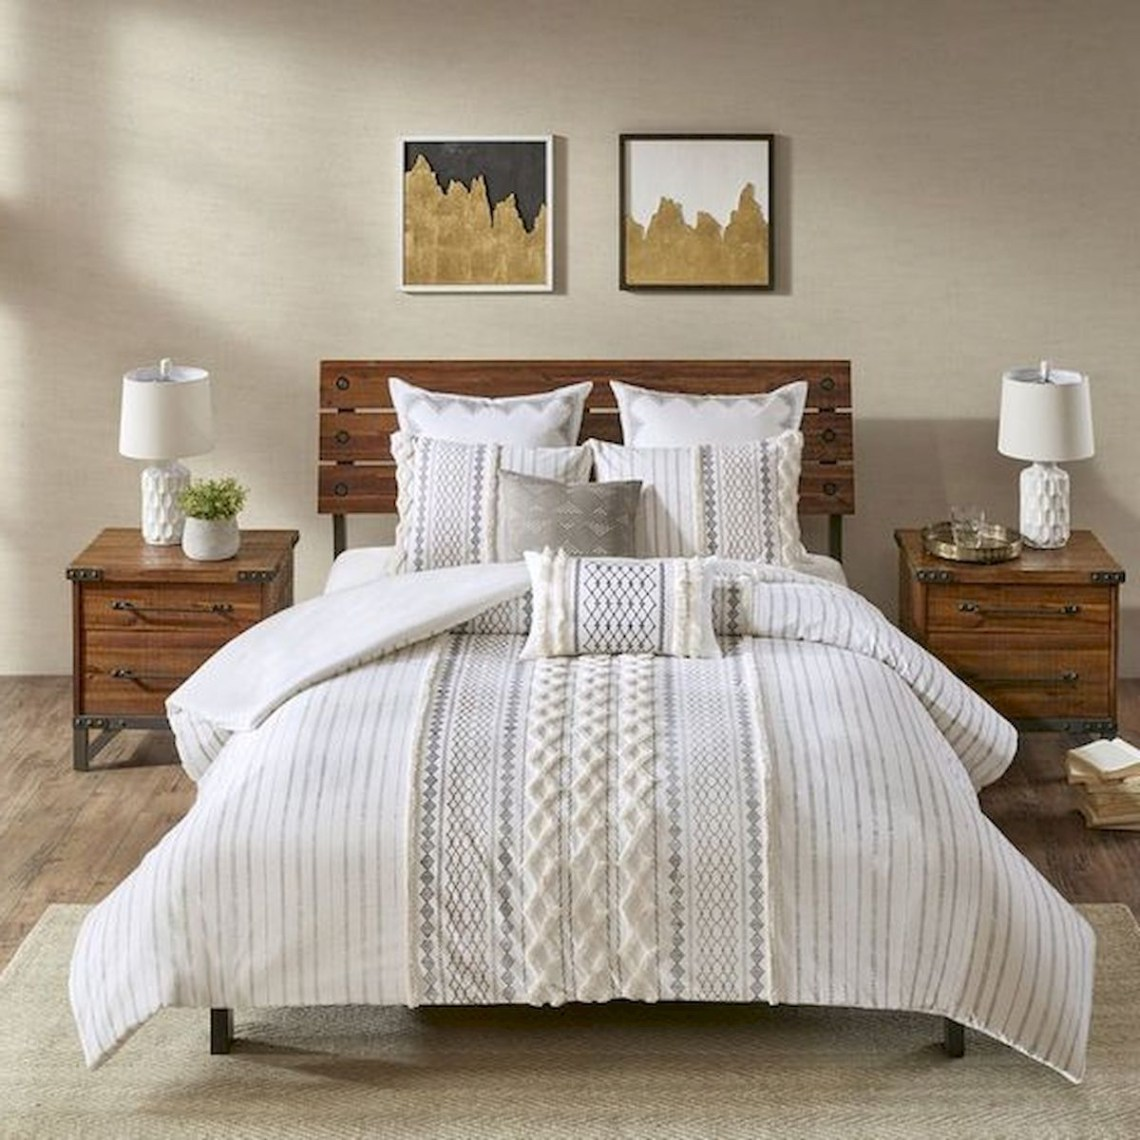 47 Most Popular Bedding For Farmhouse Bedroom Design Ideas